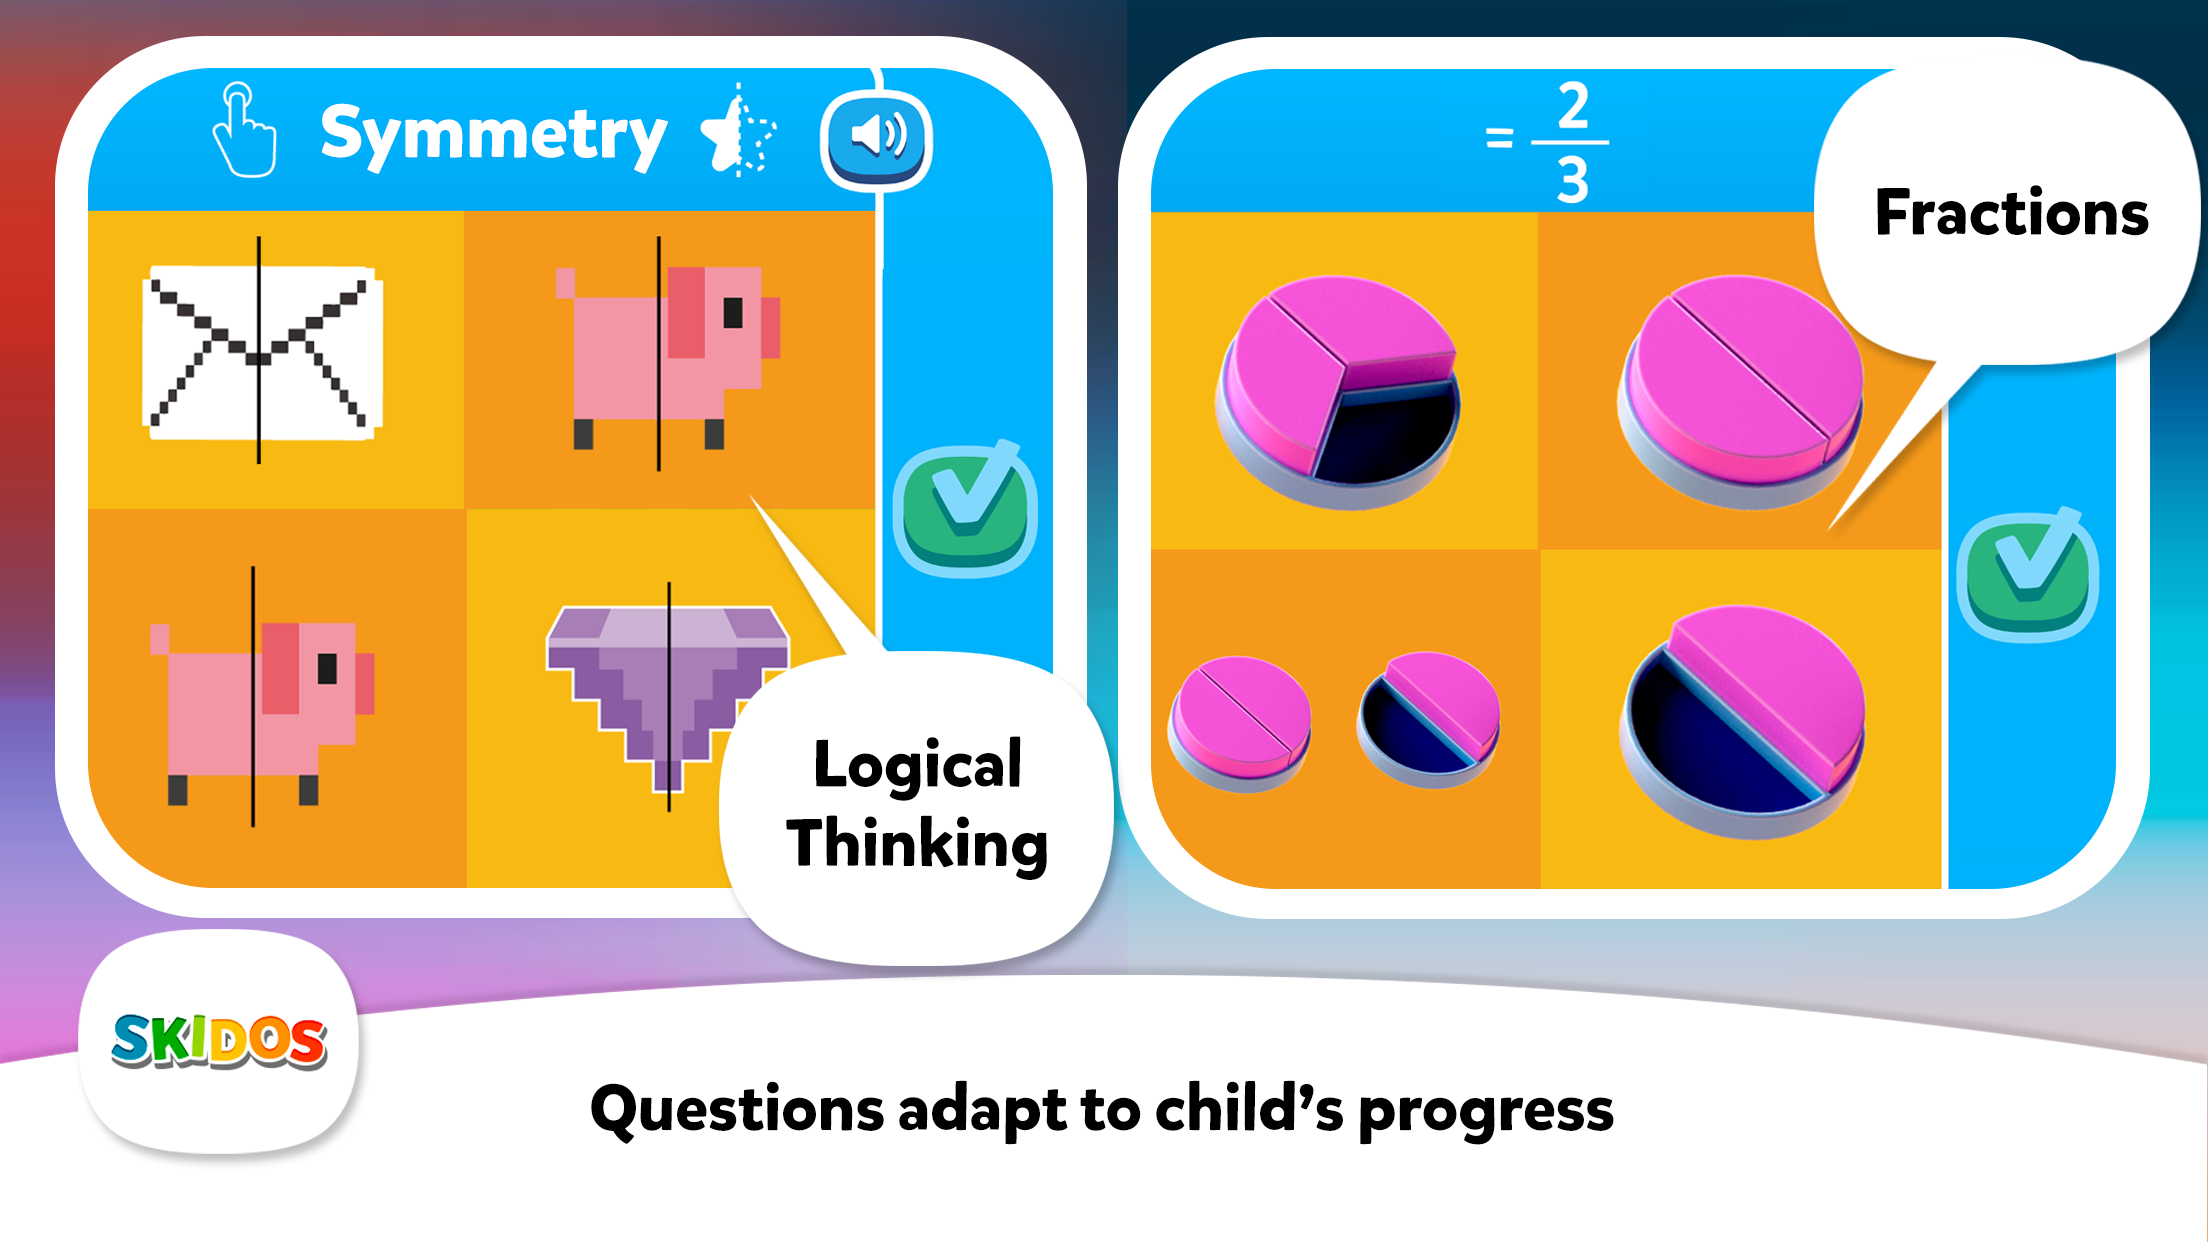 SKIDOS Symmetry and Fractions Math Questions